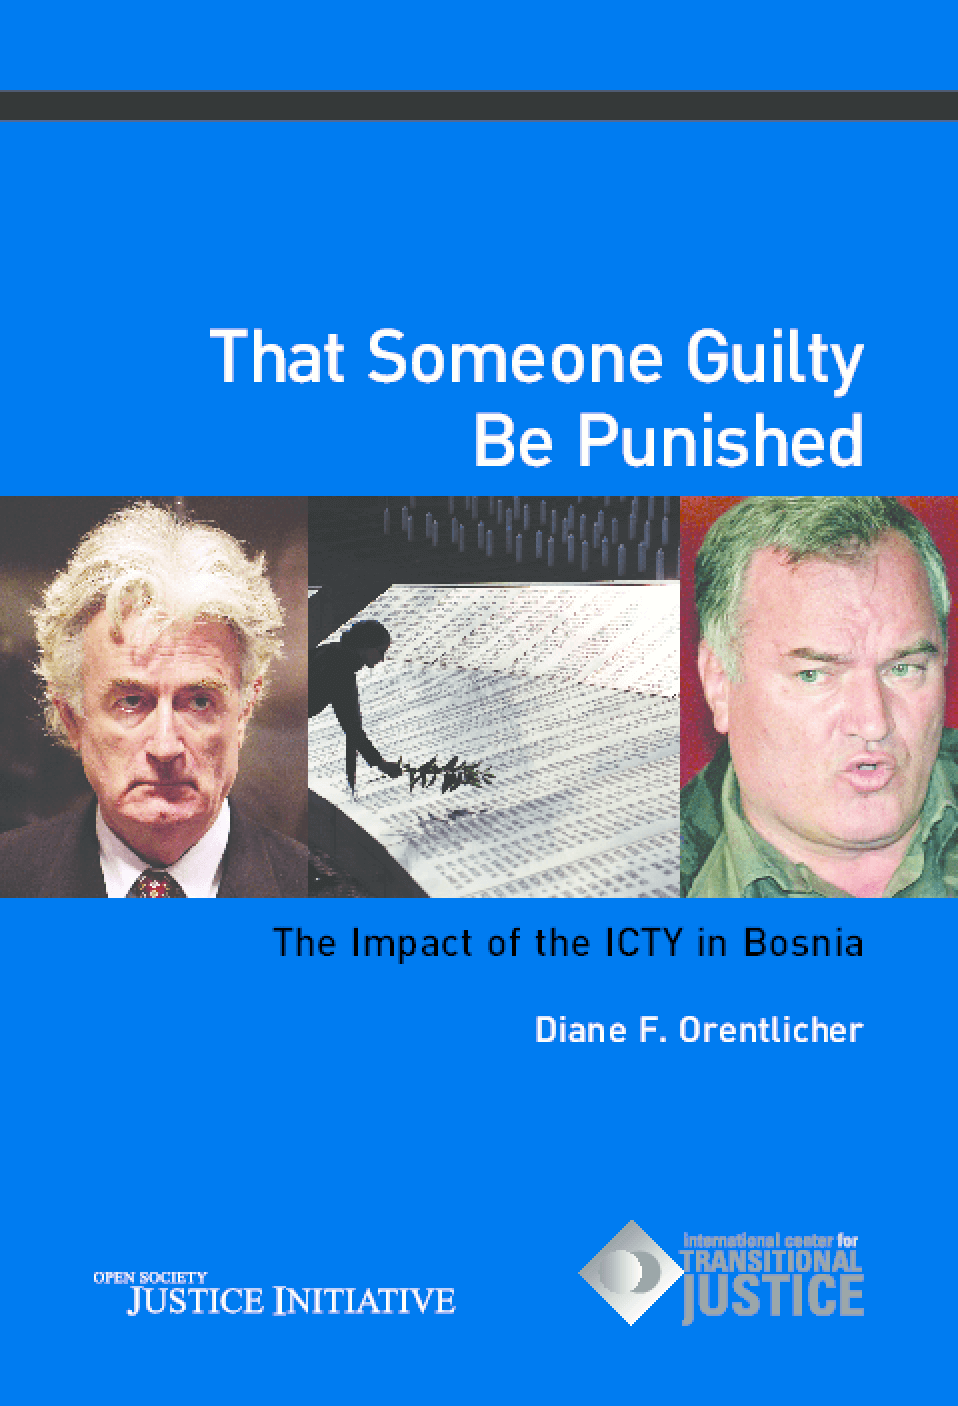 That Someone Guilty Be Punished: The Impact of the ICTY in Bosnia